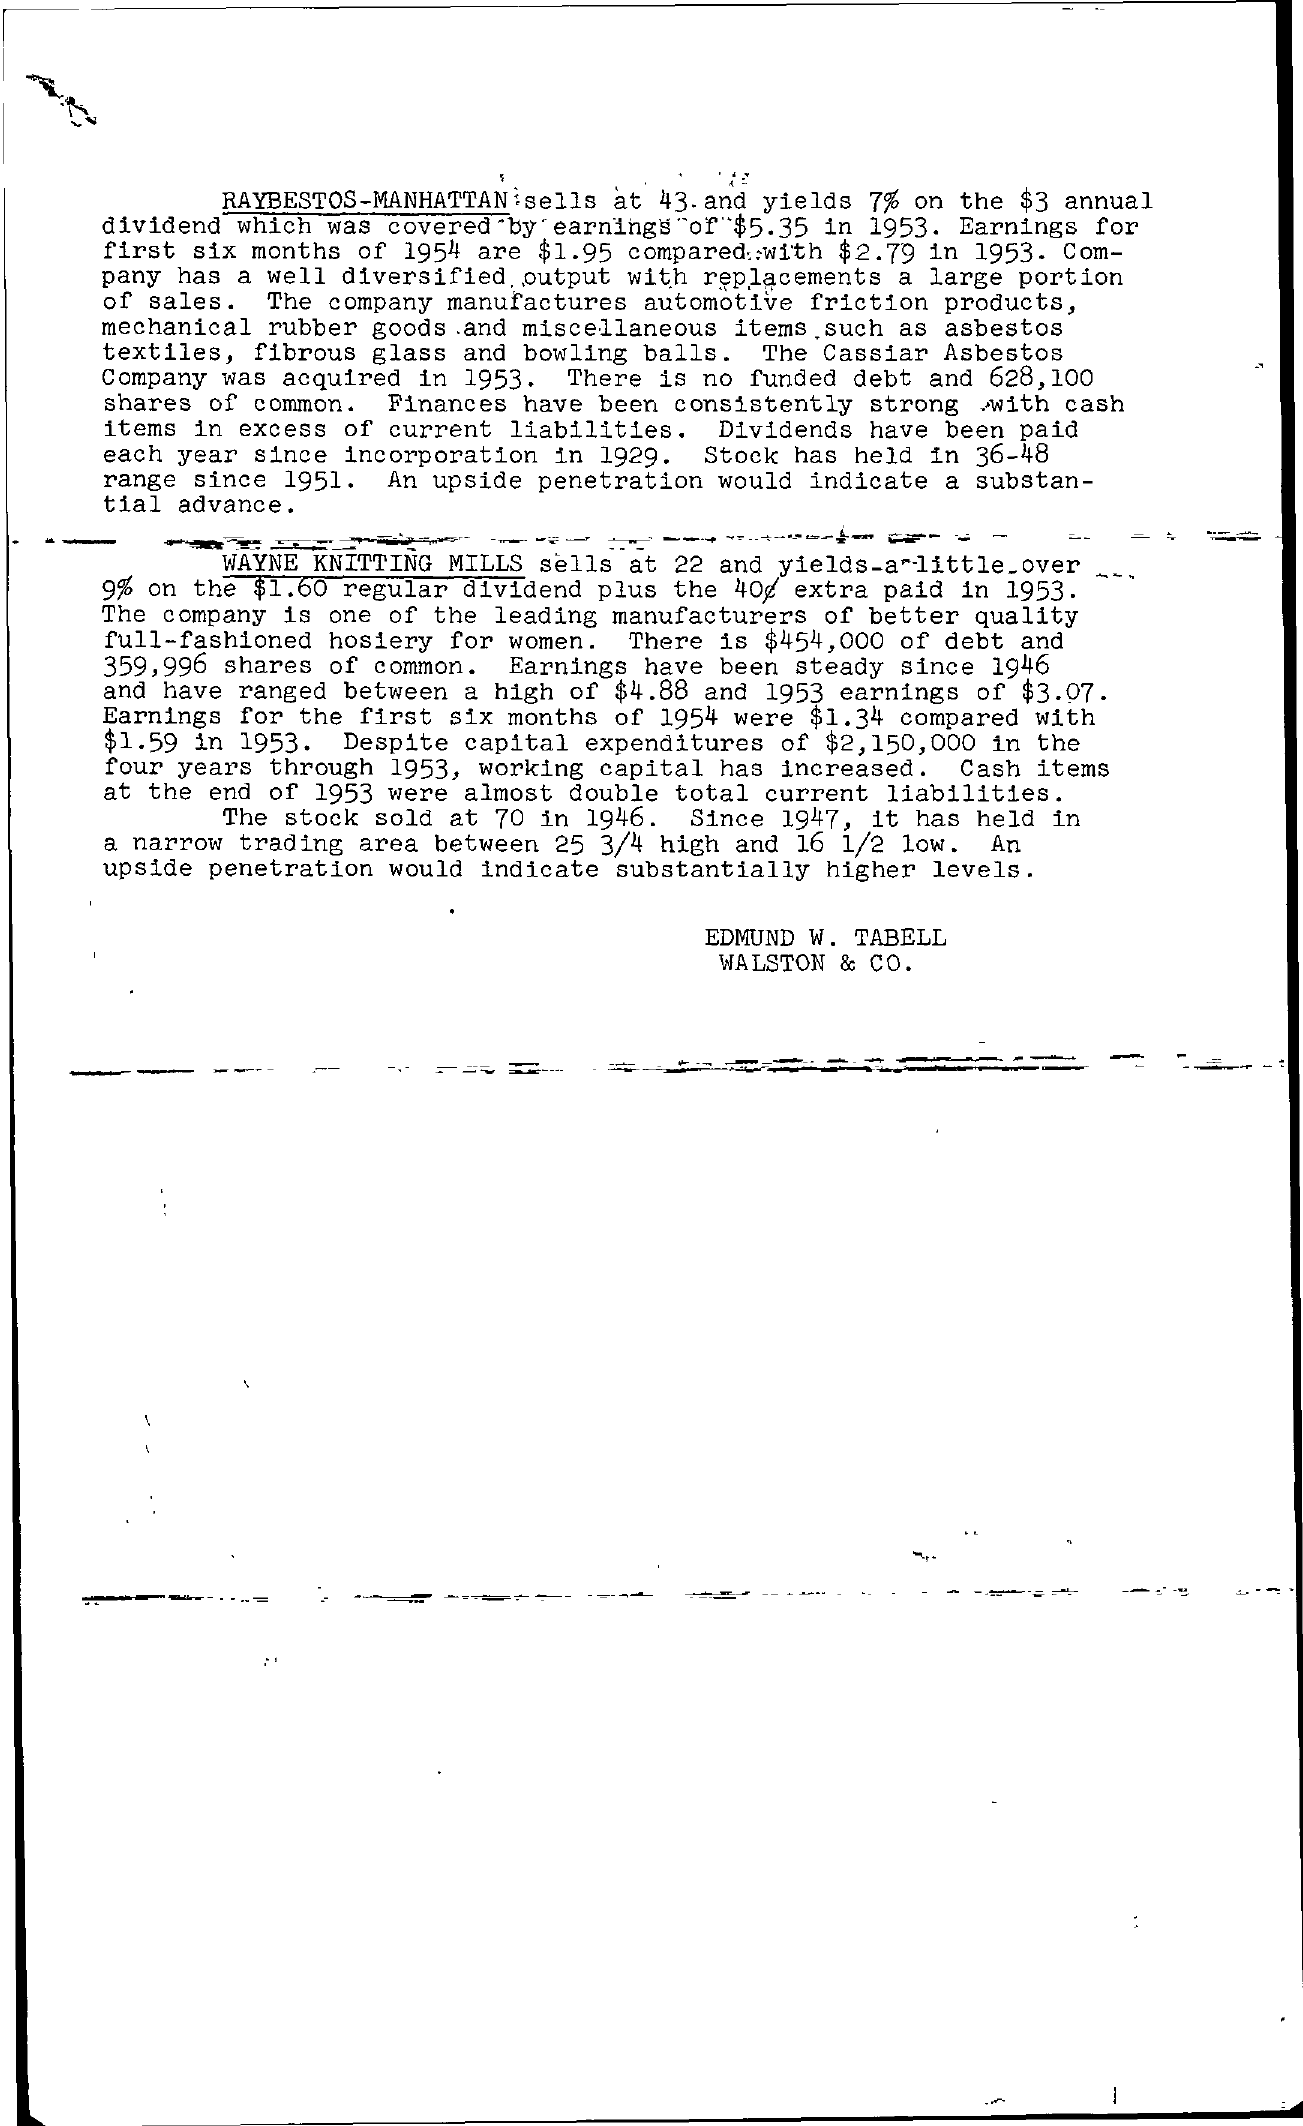 Tabell's Market Letter - August 20, 1954 page 2